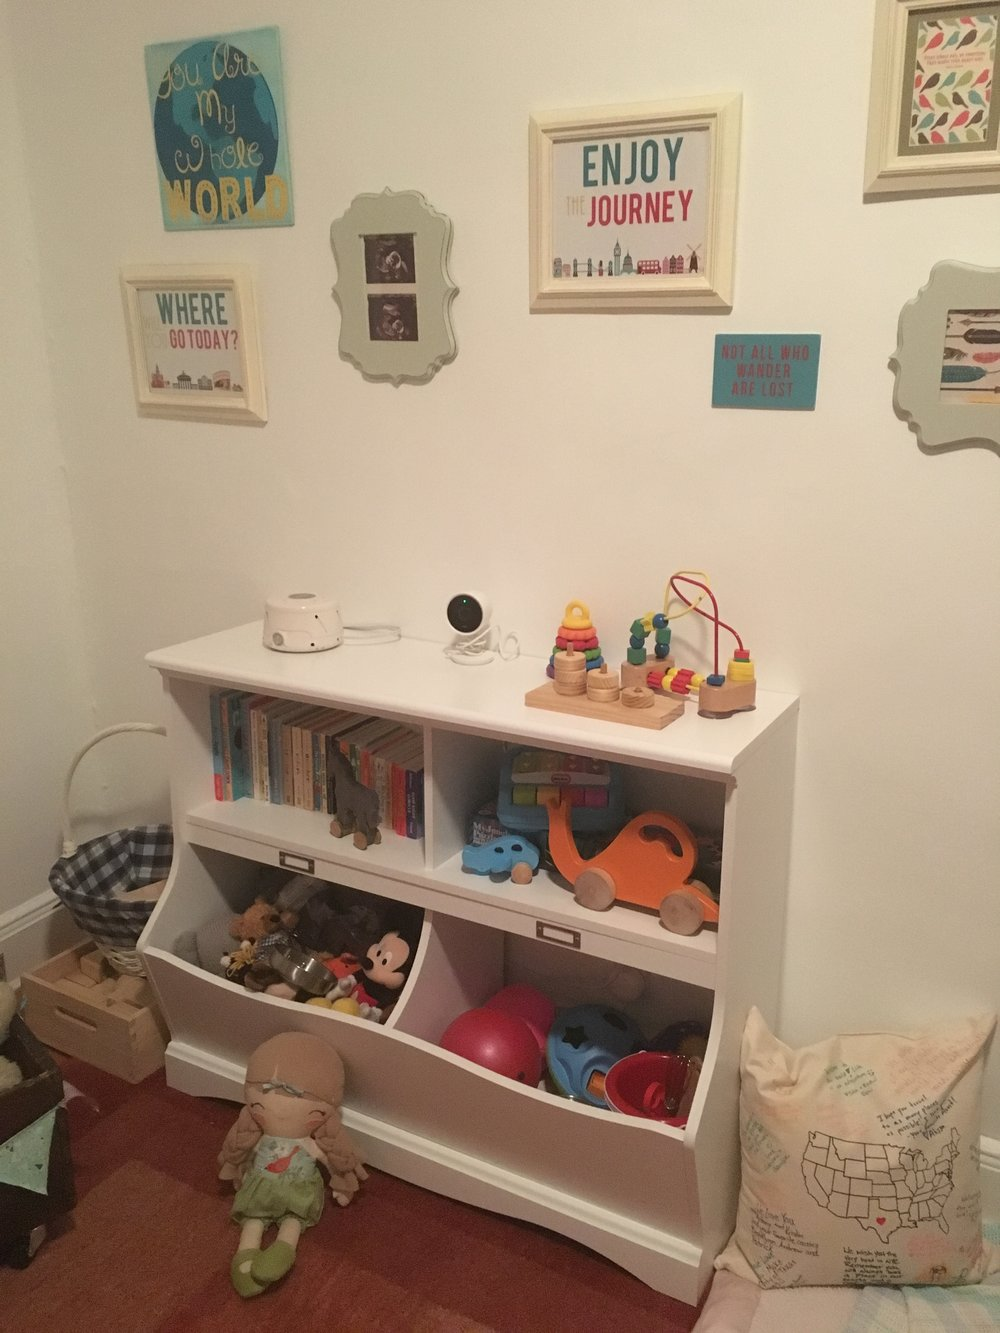 One of Adeline's early room arrangements